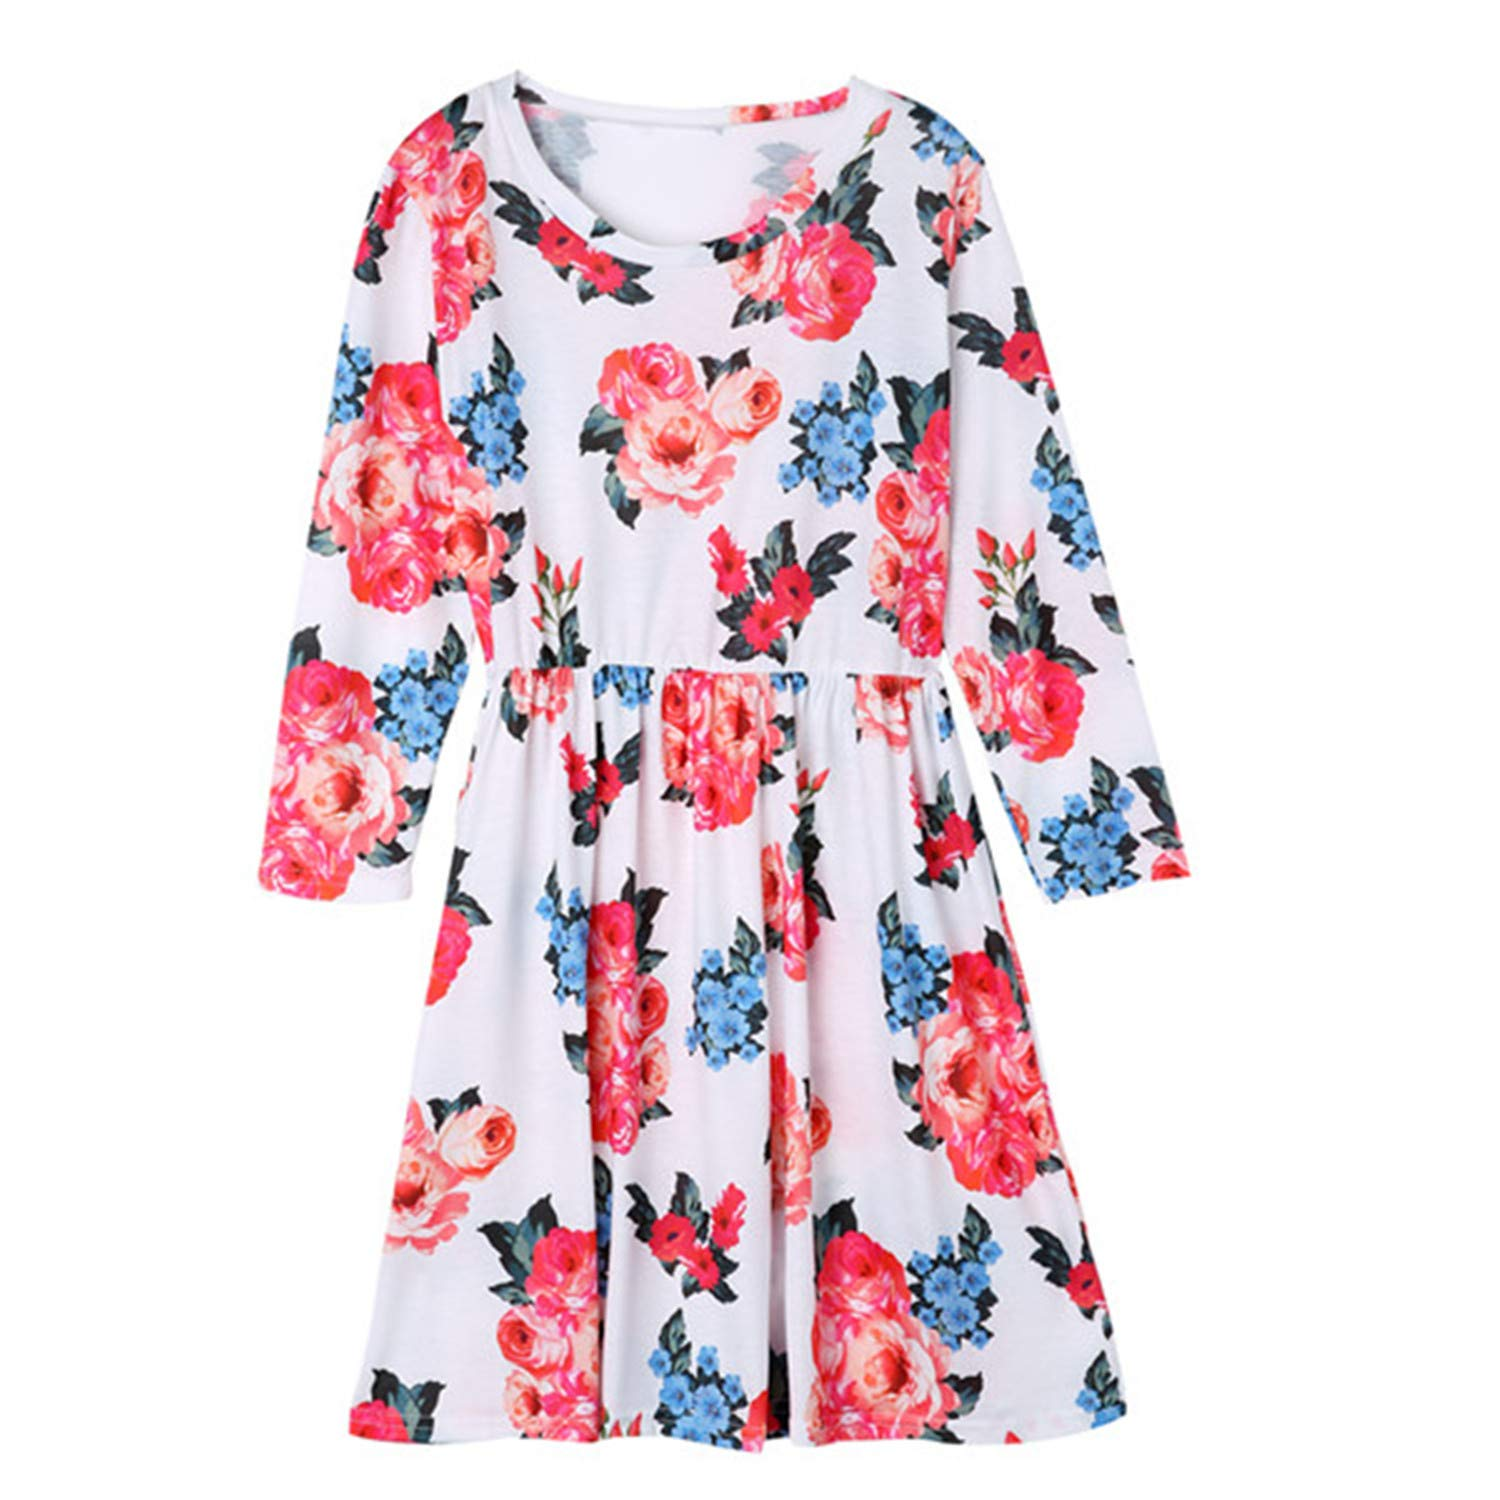 2019 Hot Summer Mother Daughter Dresses Fashion White Floral Print Three Quarter Spring Mini Dress Family Look Dress Mommy and me Clothes